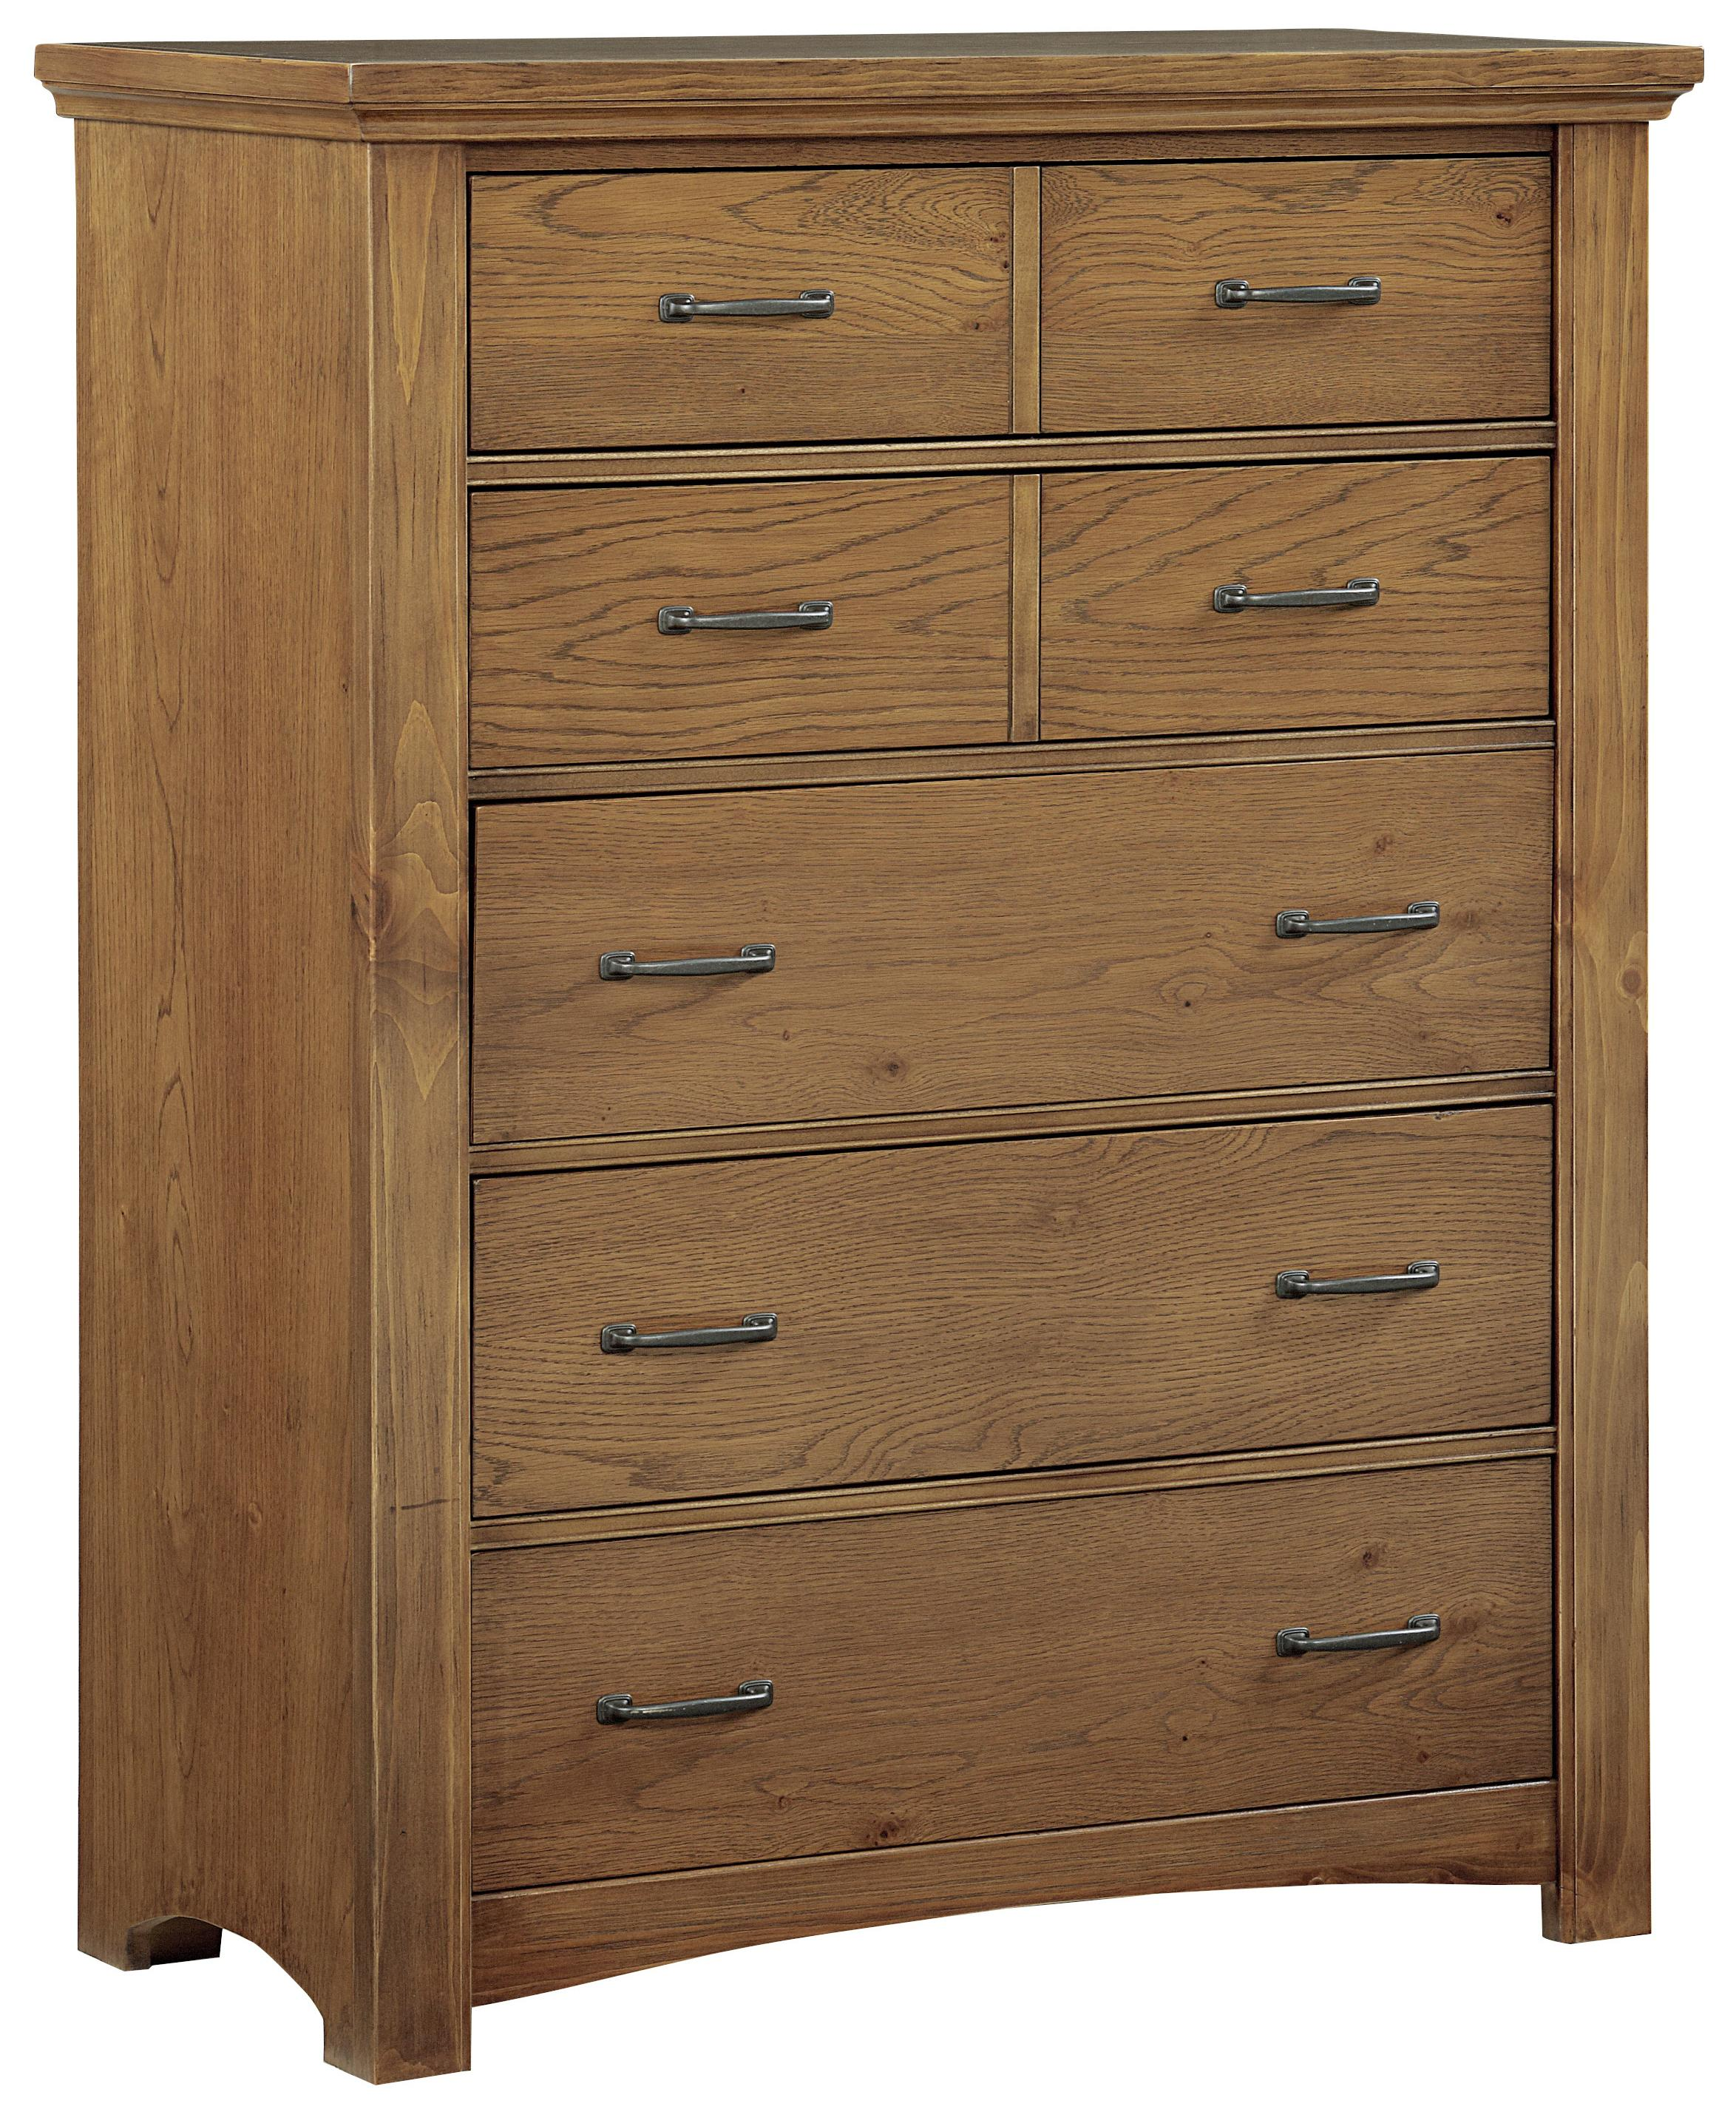 Vaughan Bassett Transitions Chest - 5 drawers - Item Number: BB63-115